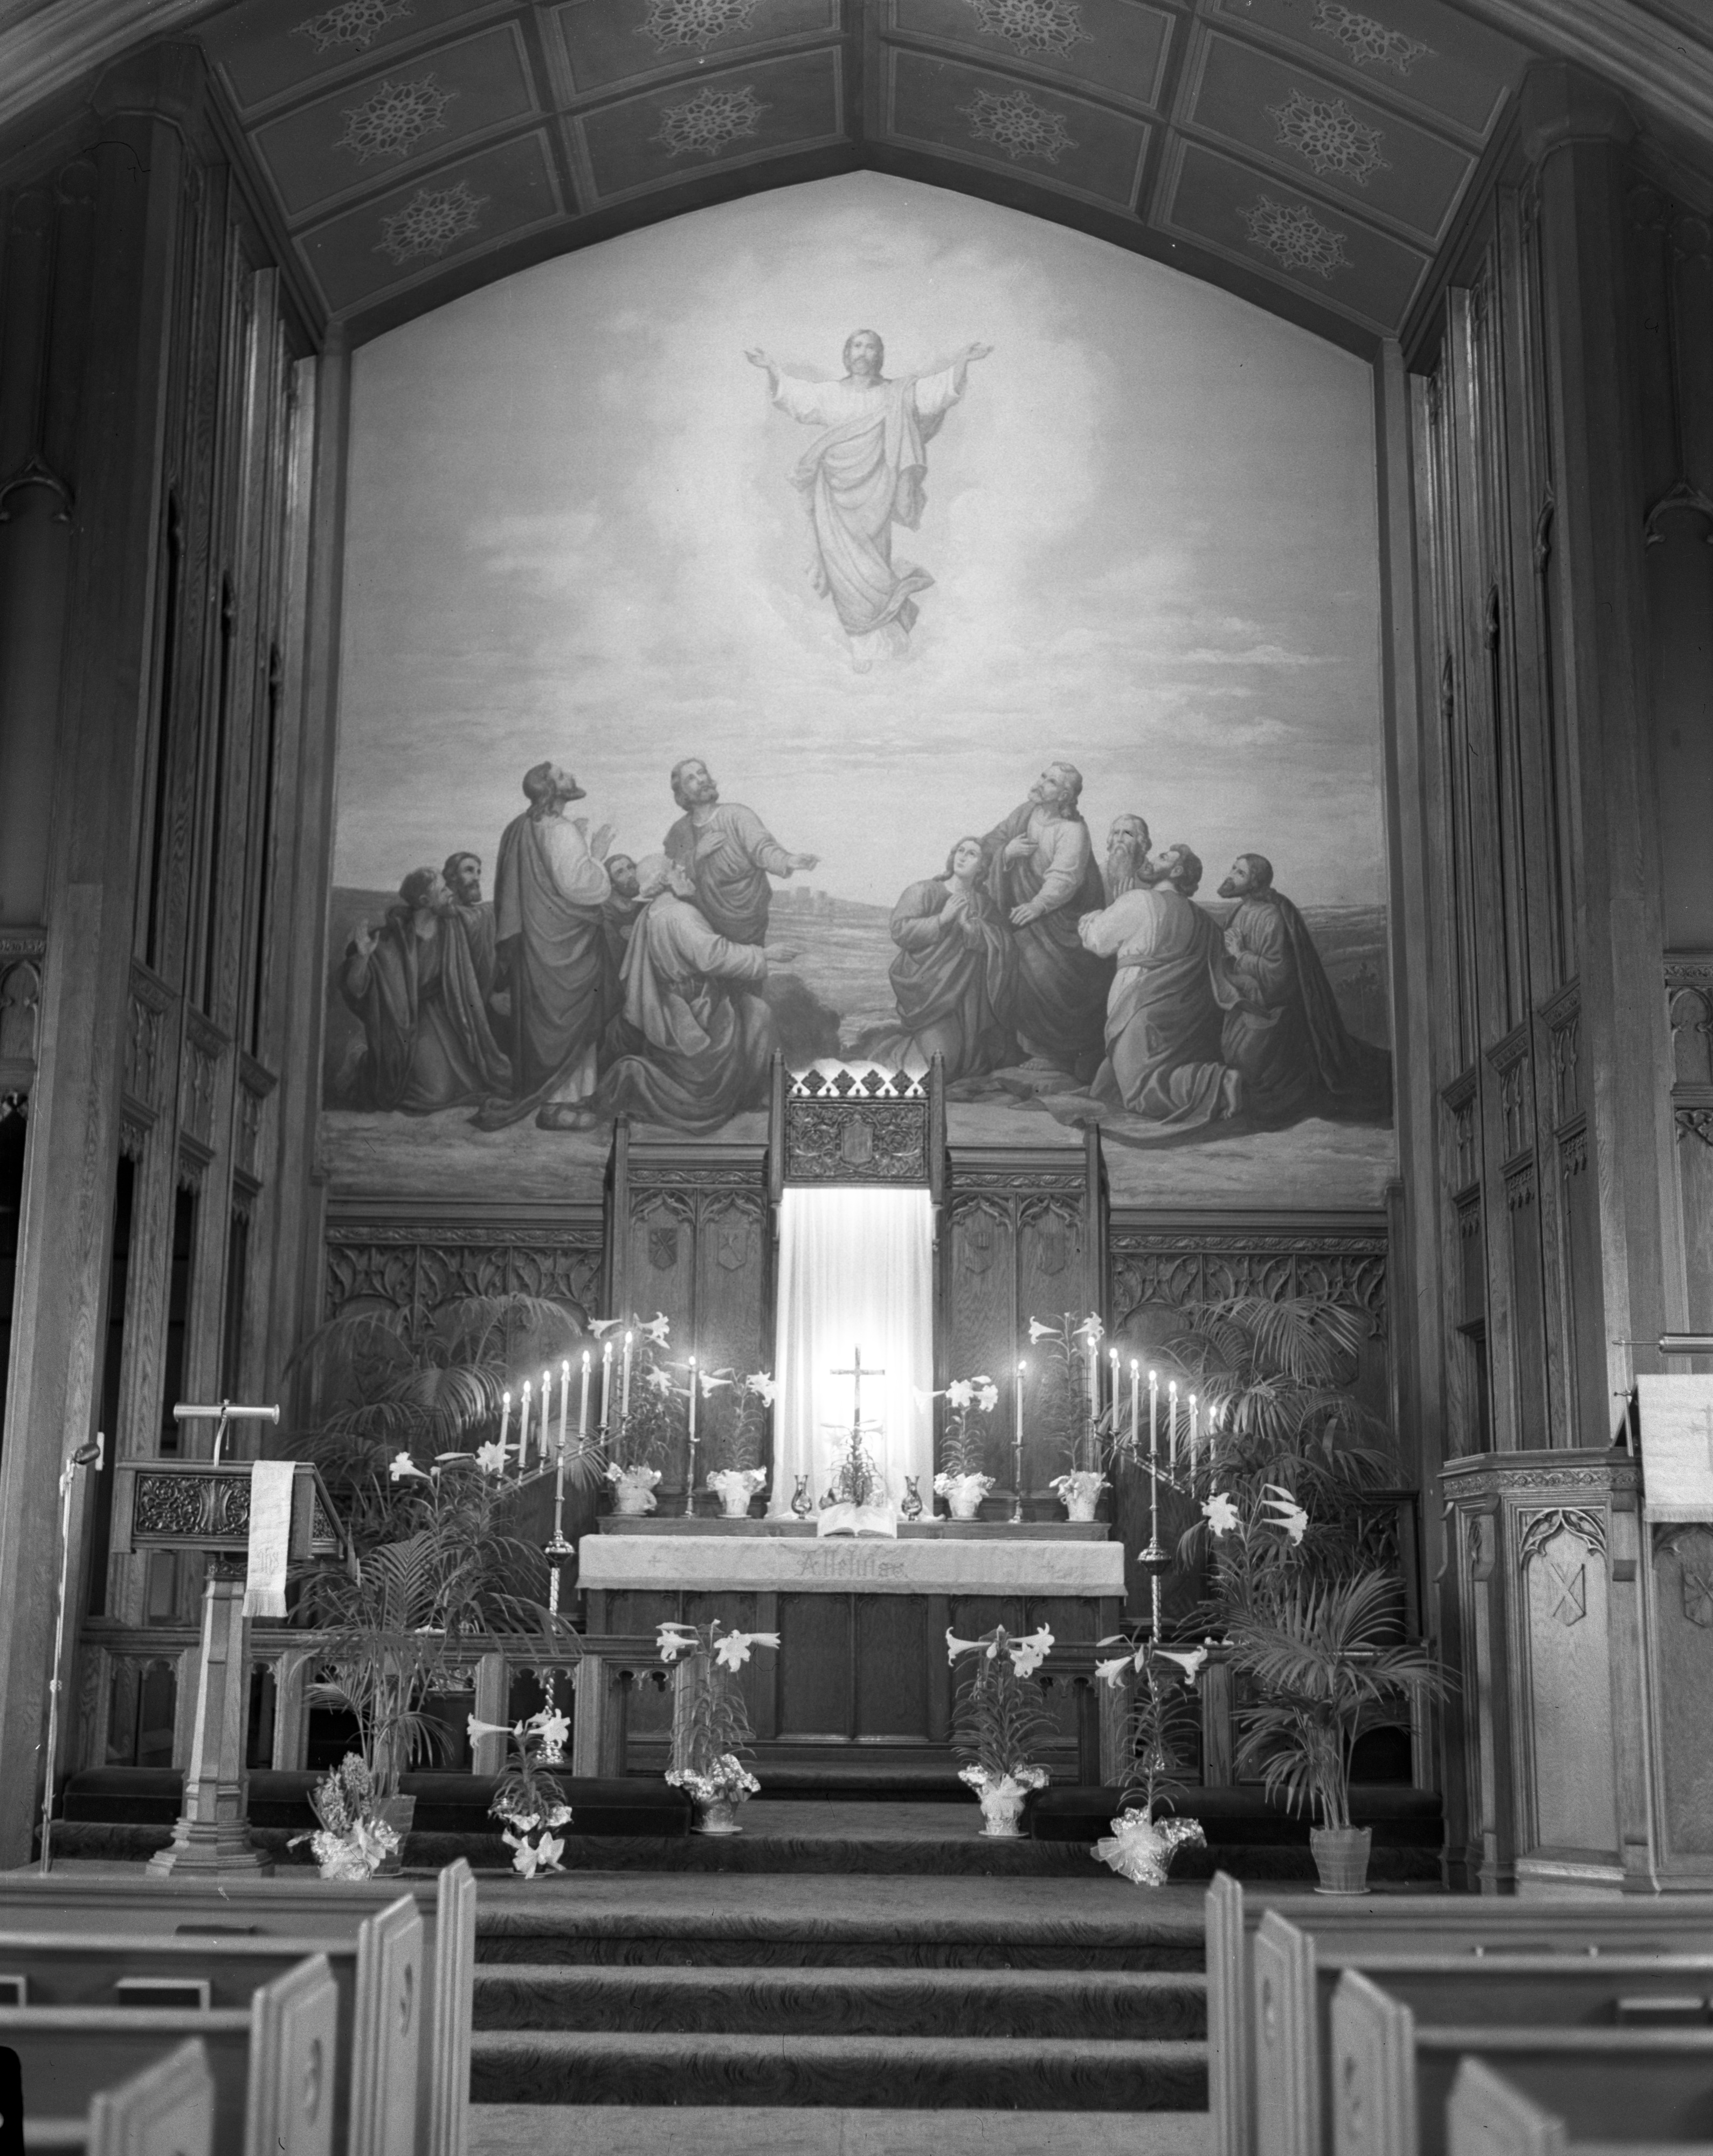 St. Paul's Lutheran Church Interior Easter Decorations, March 1951 image